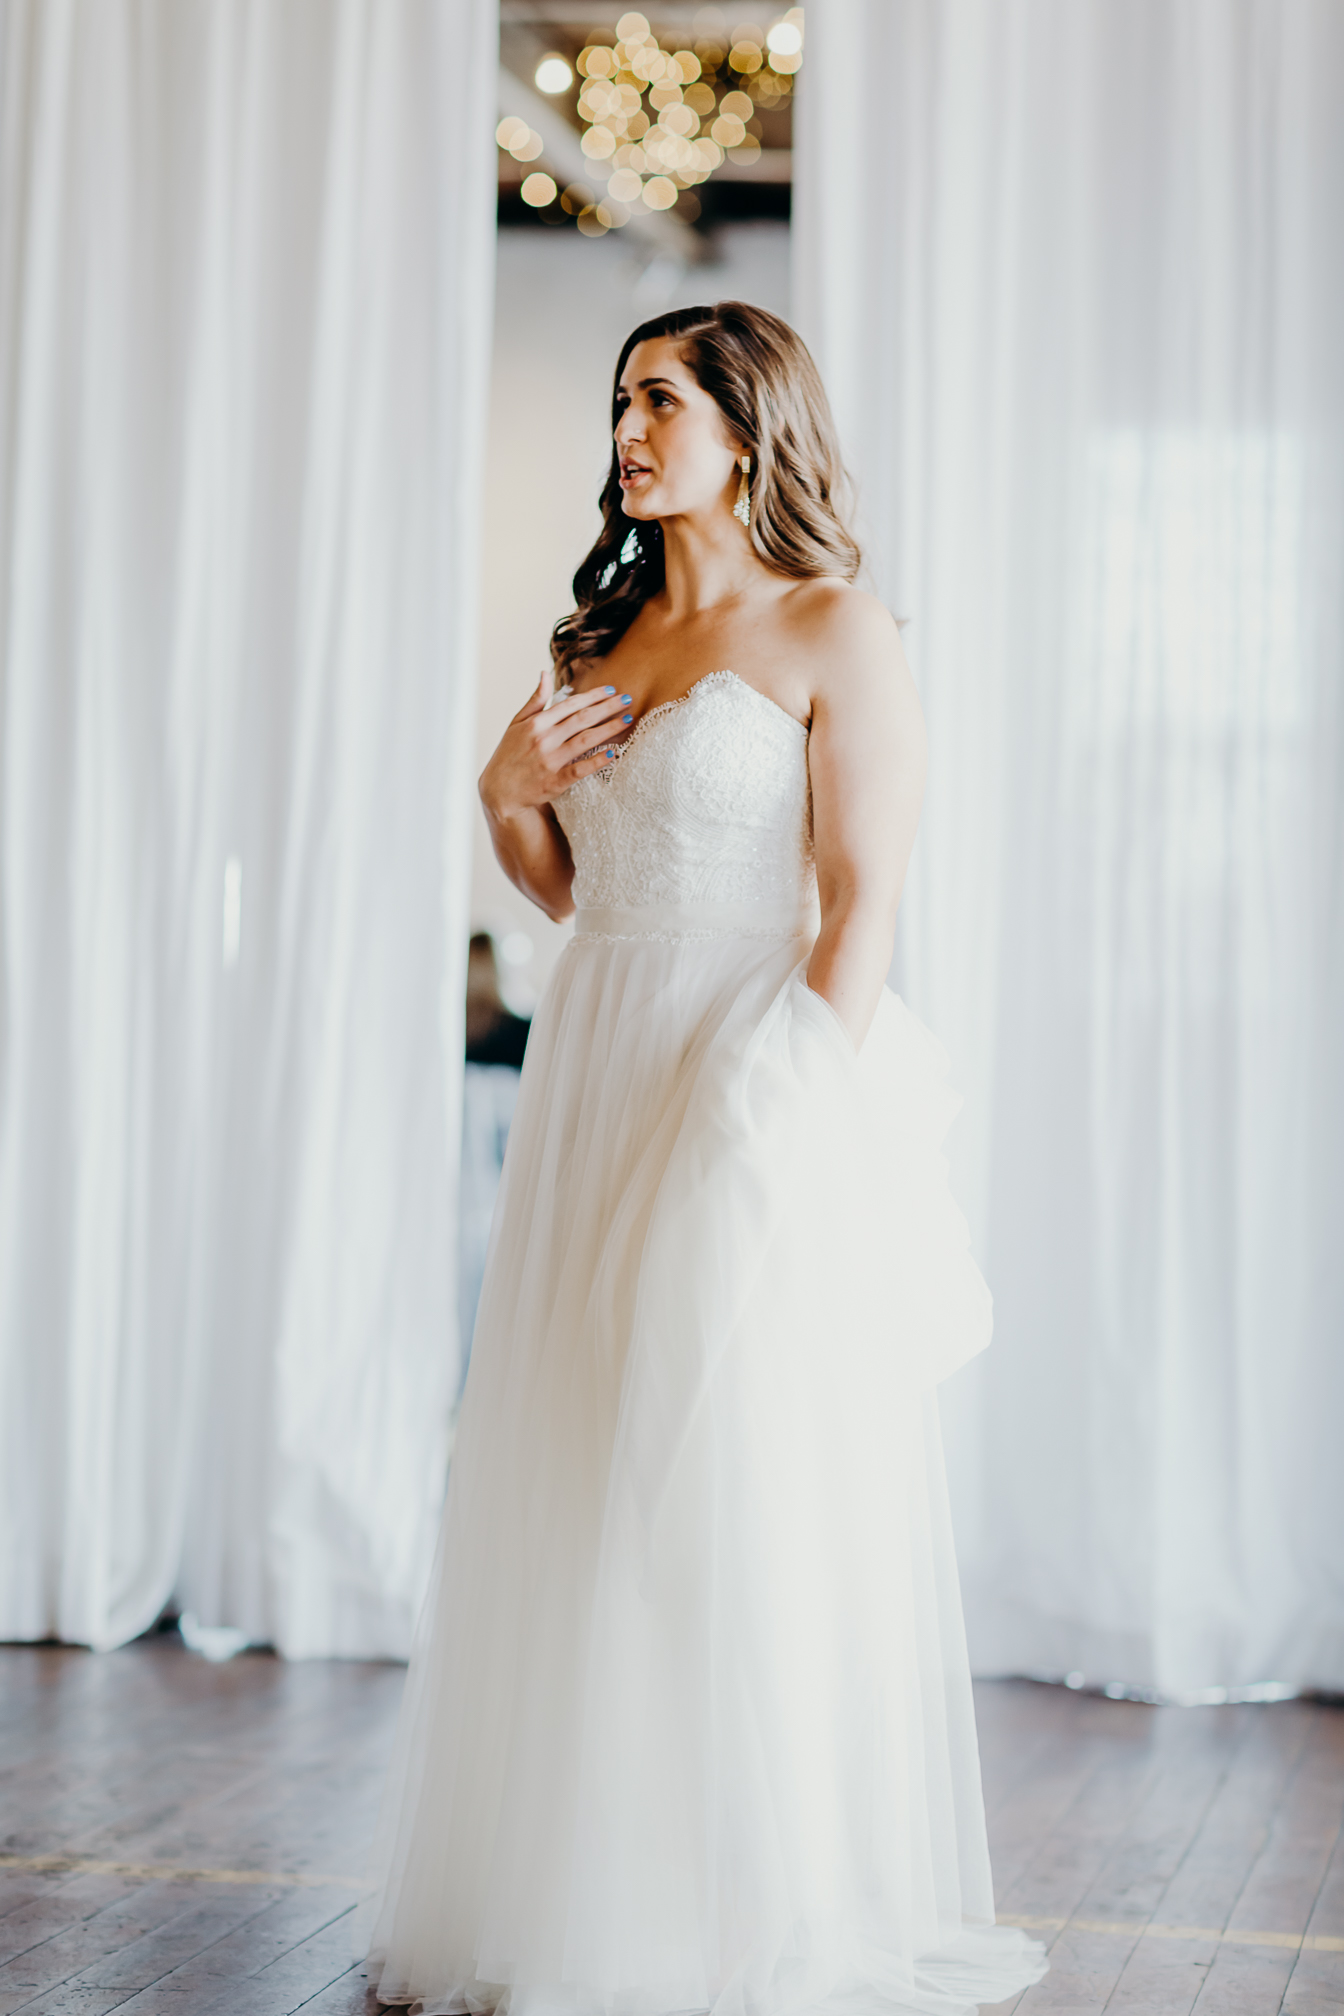 Gianna Keiko Atlanta NYC California Wedding Elopement Photographer_Sneak Peek-17.jpg